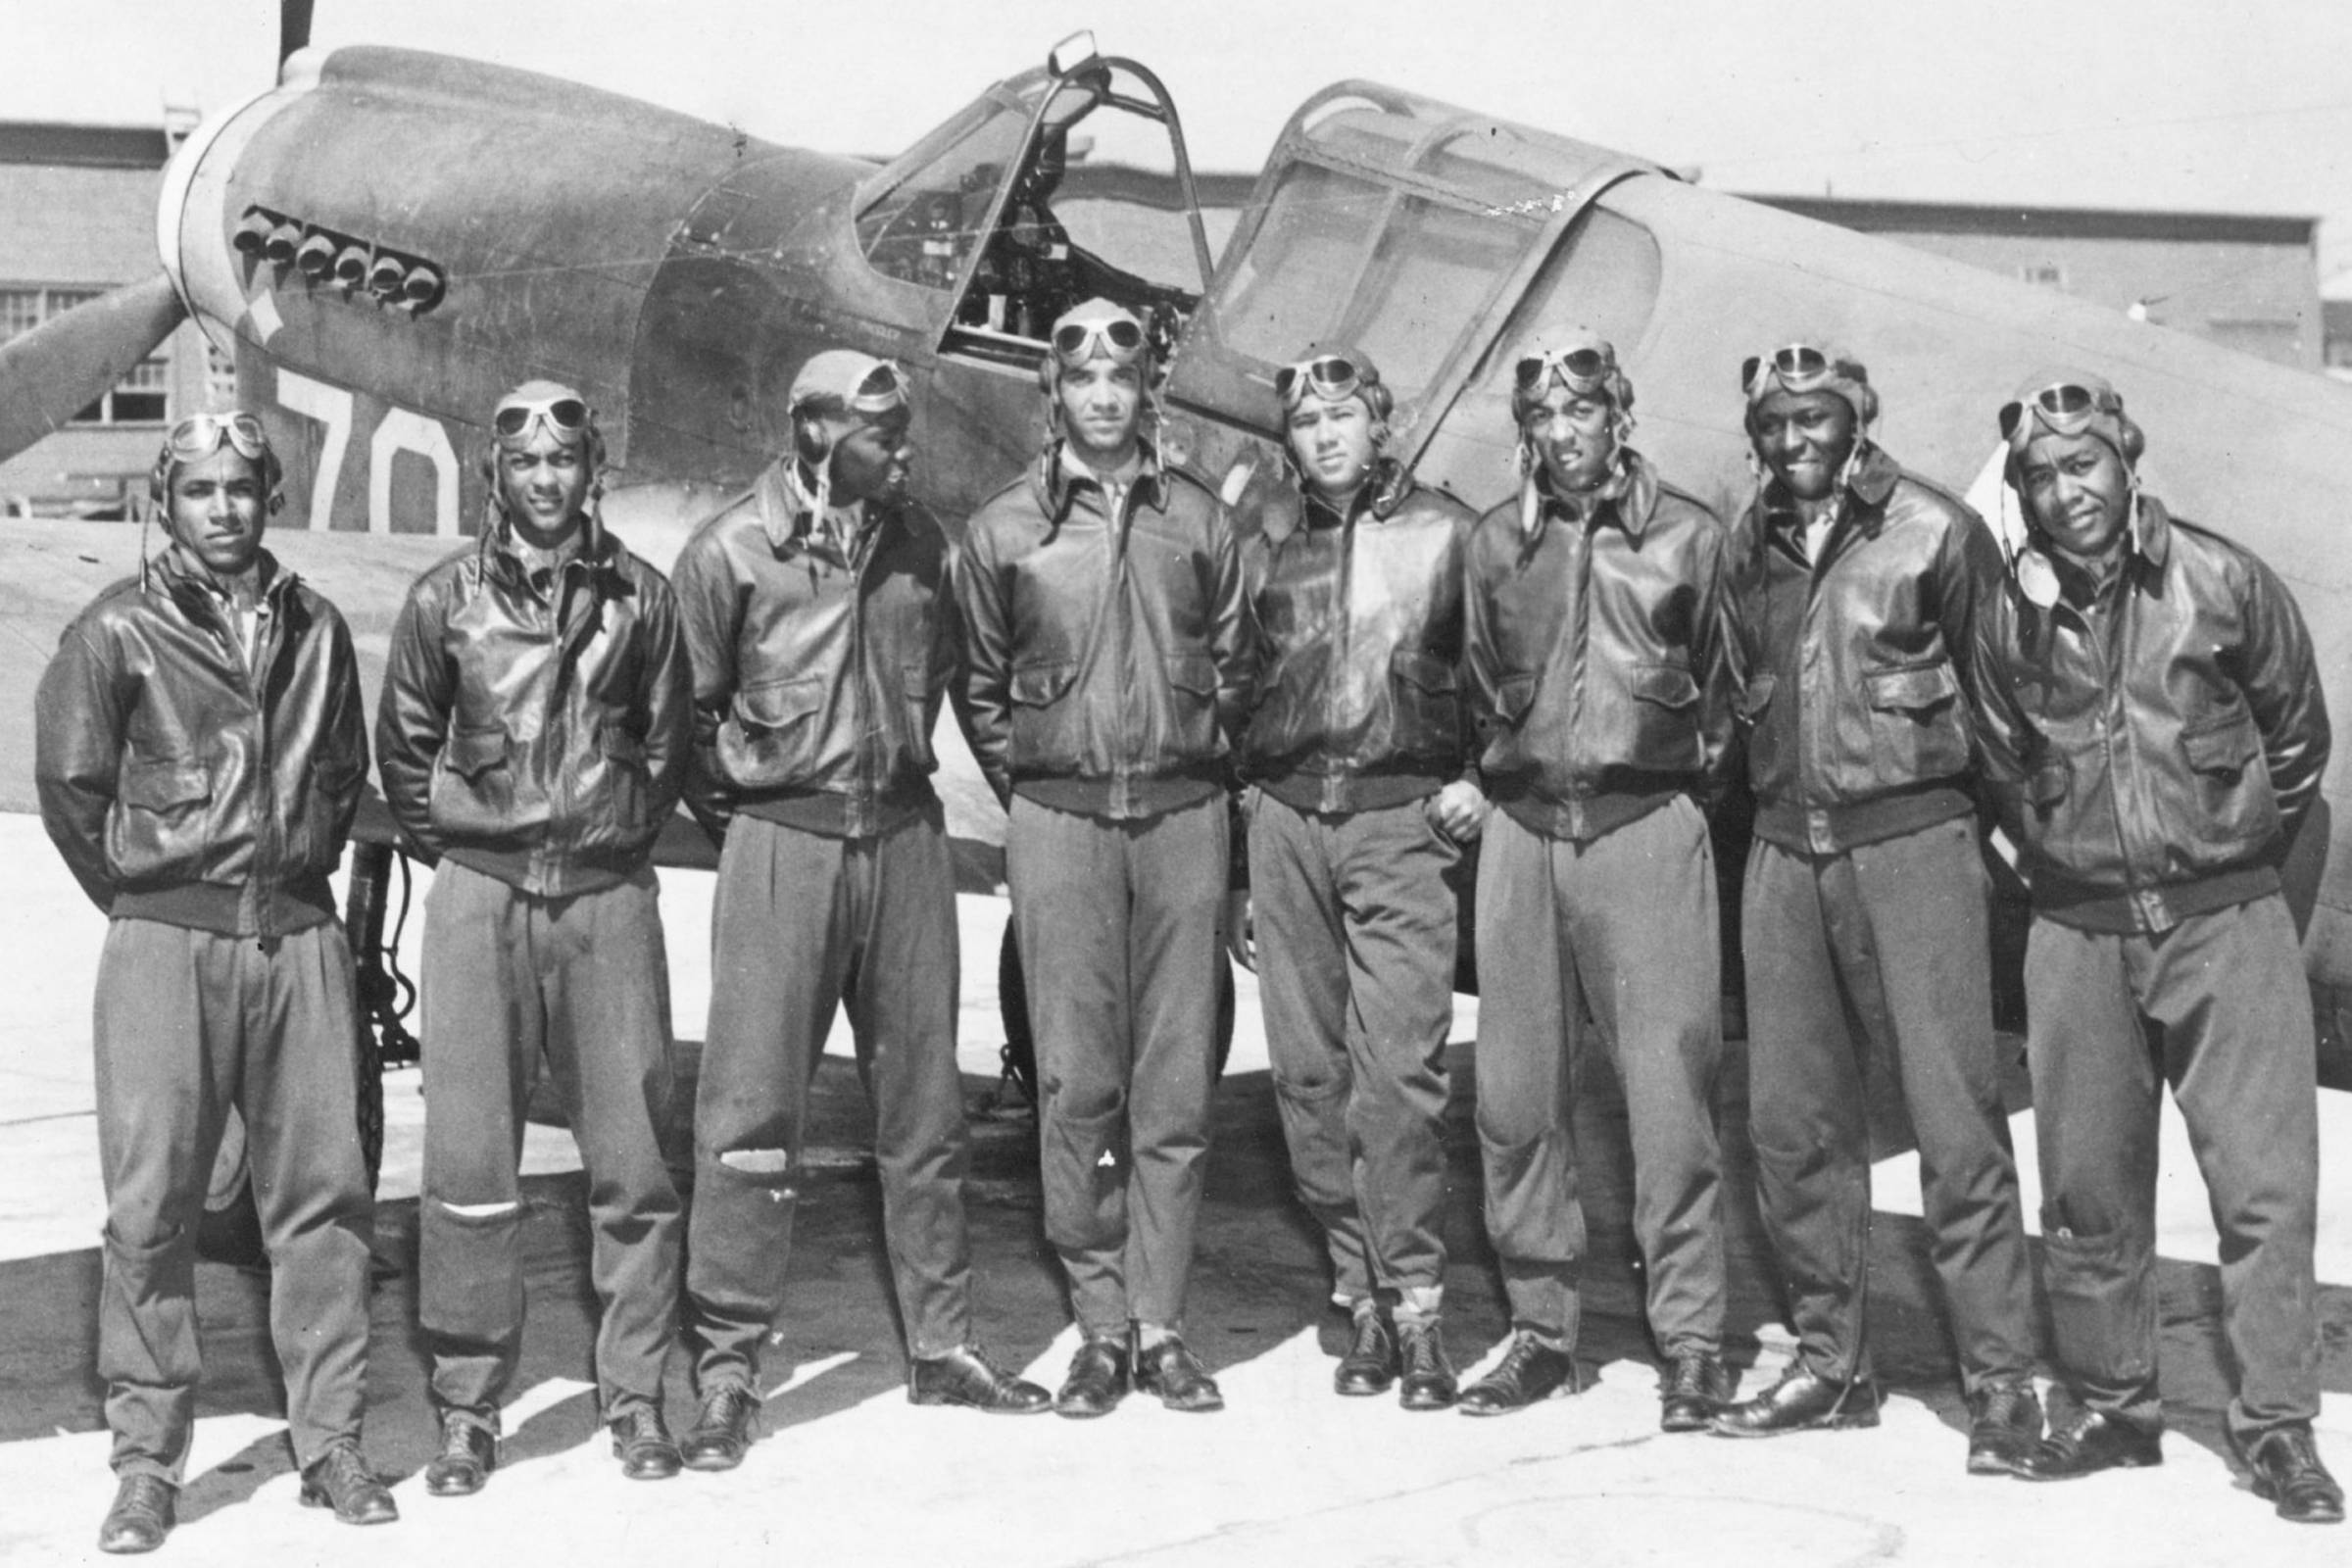 Tuskegee Airmen in A-2-style flight jackets